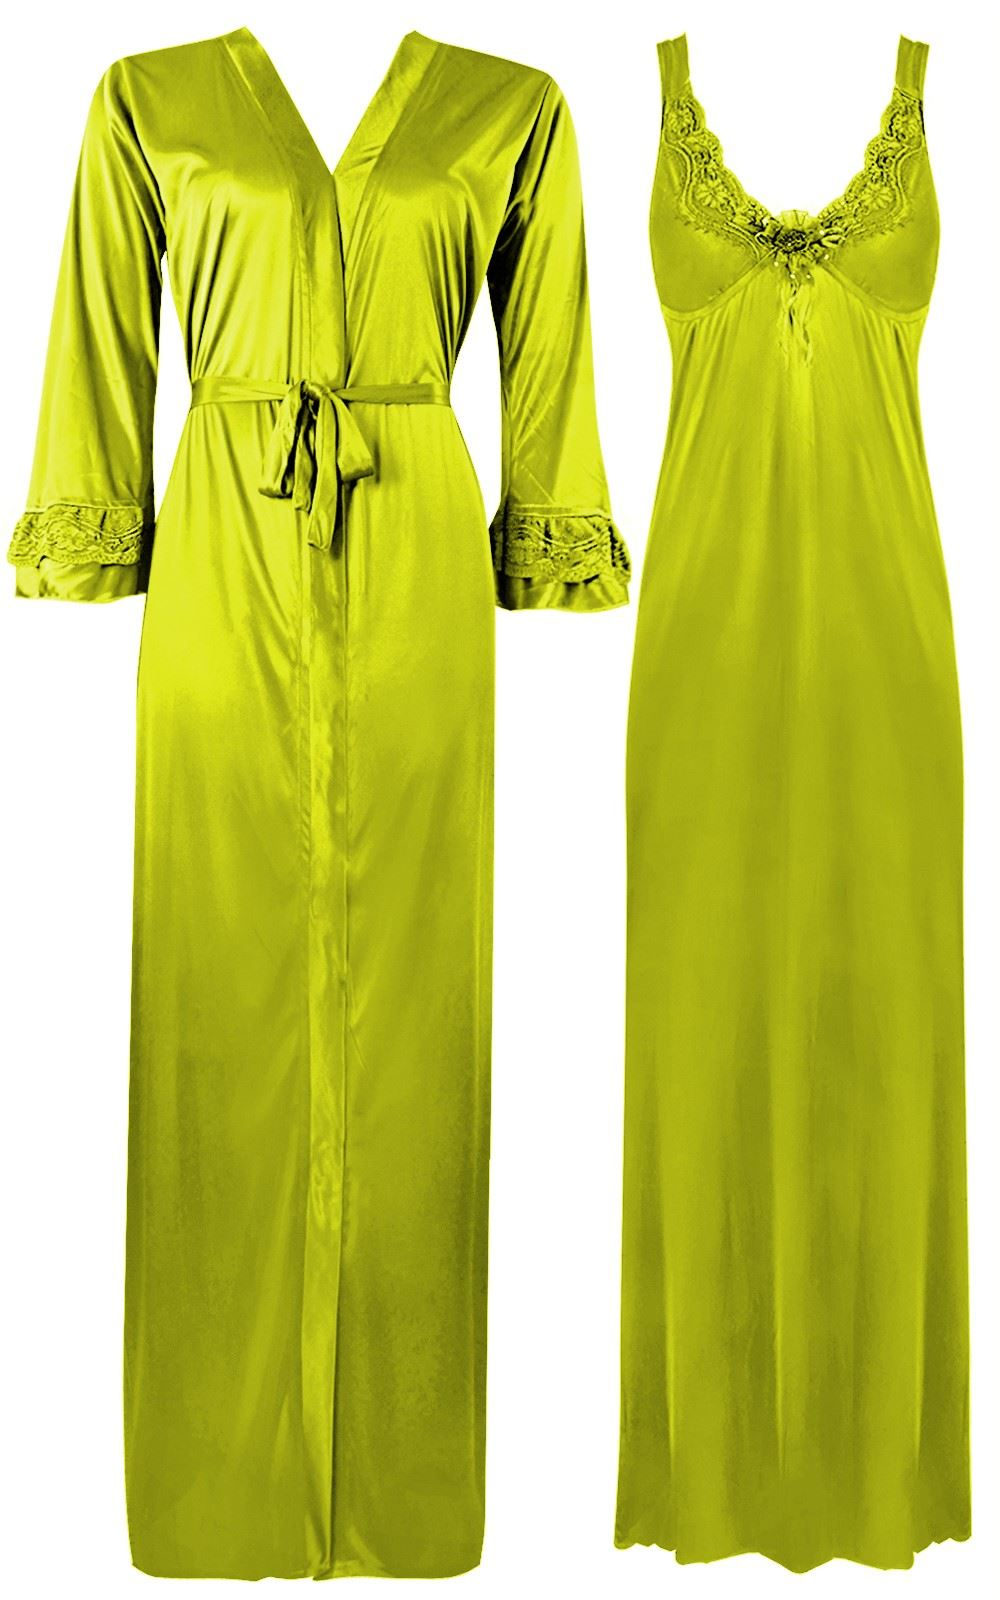 Color: Neon Green 2 Piece Satin Nighty and Robe With Long Sleeve Dressing Gown Size: XL